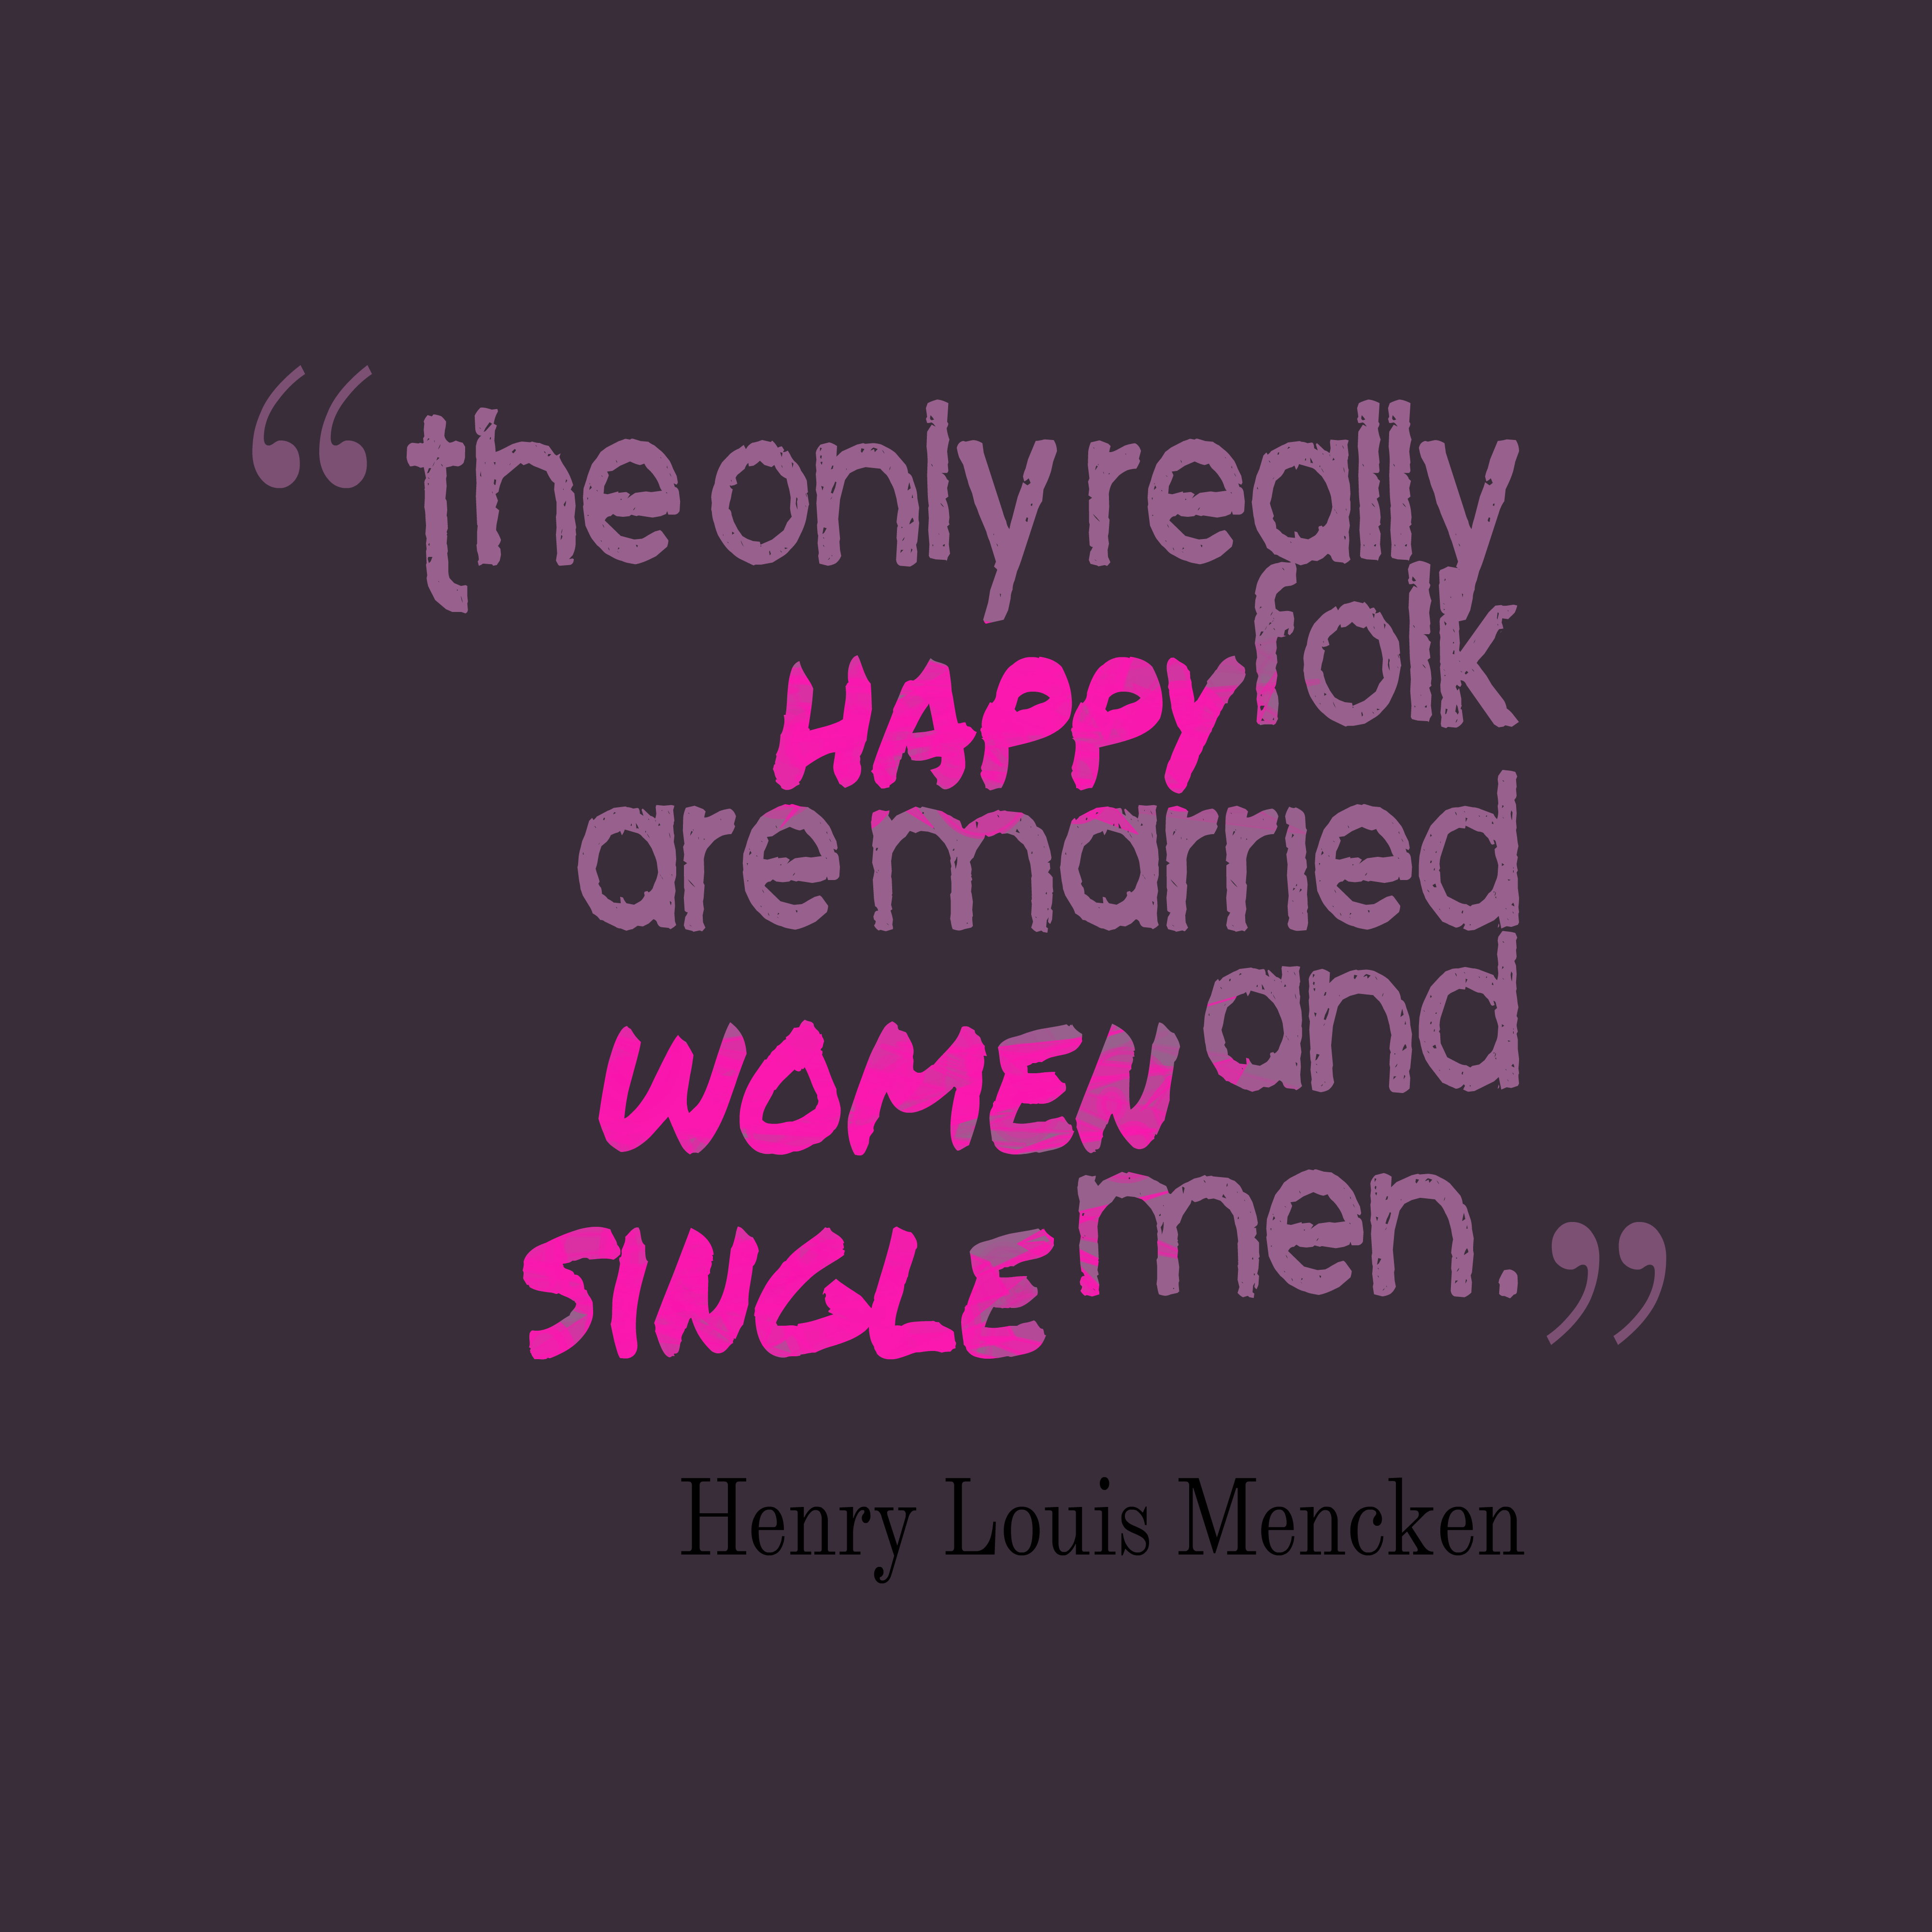 Quotes image of The only really happy folk are married women and single men.